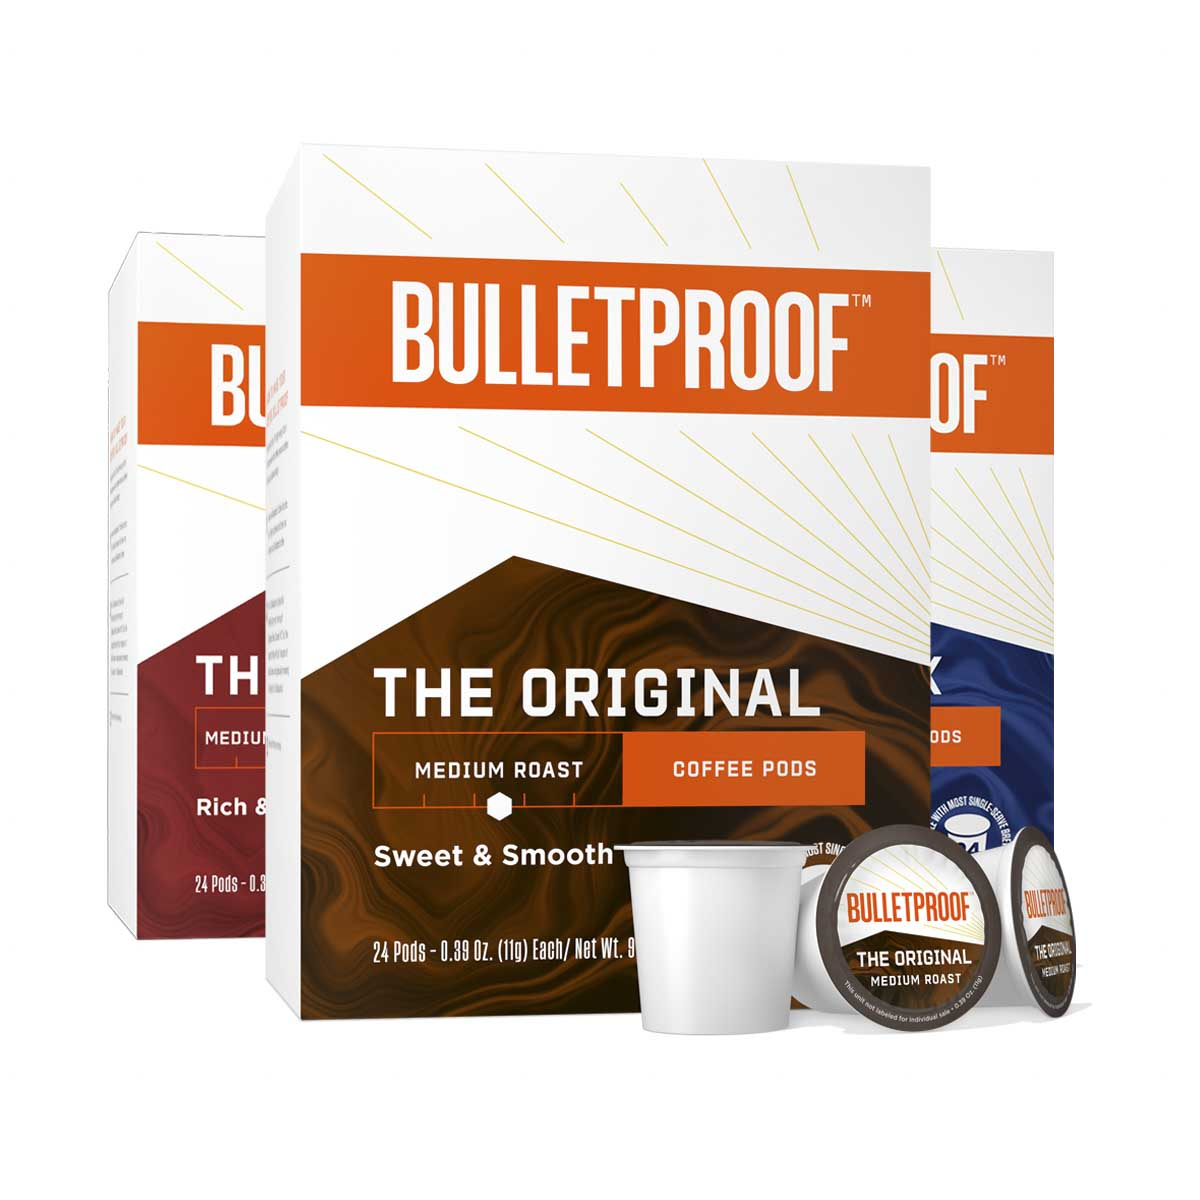 Bulletproof Variety Pack Coffee Pods 24ct - 3 Pack ($26.99/box)